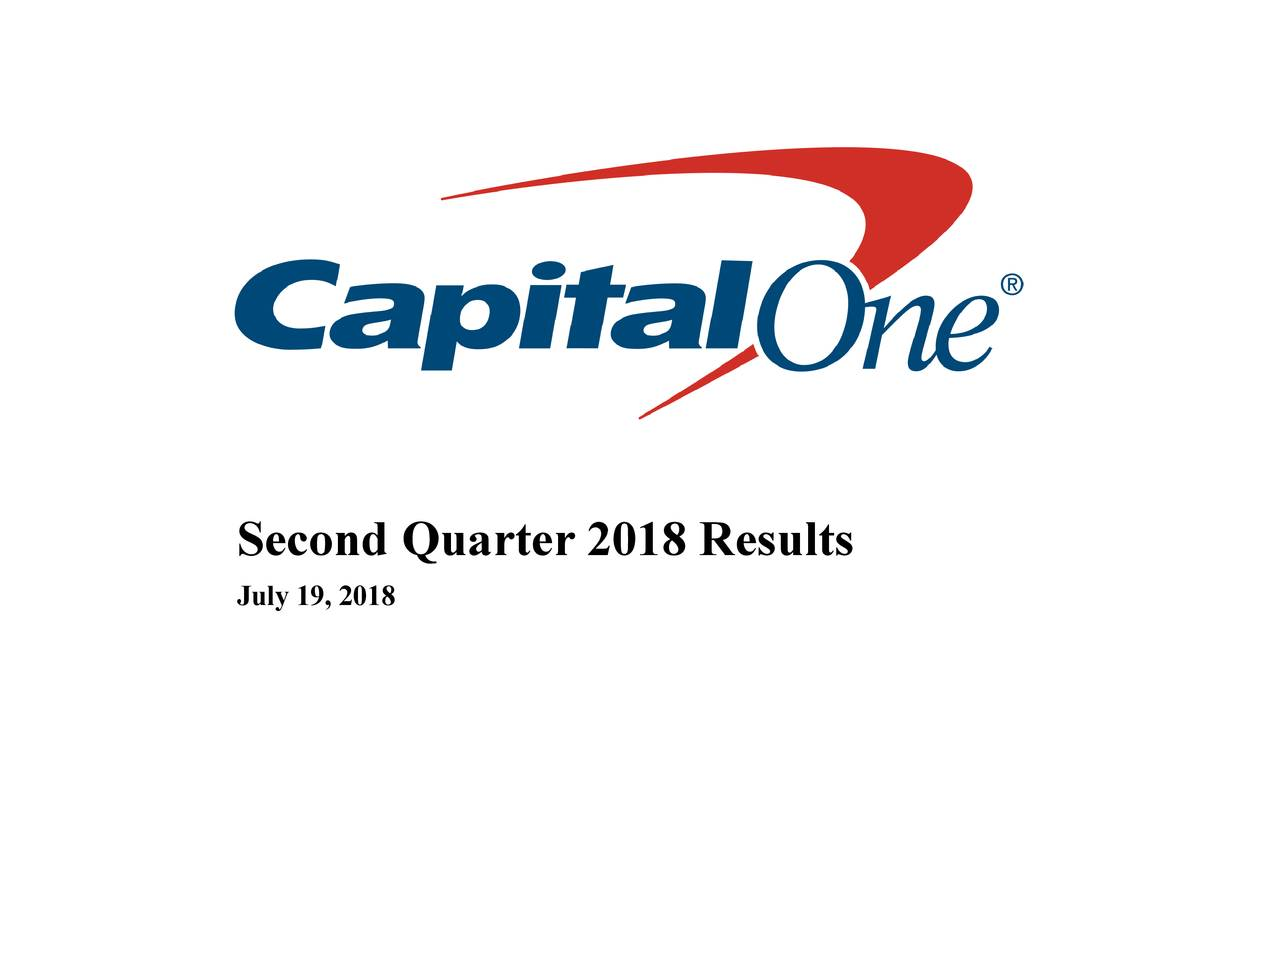 capital one executive office phone number Capital One Financial Corporation 2018 Q2 - Results - Earnings Call ...